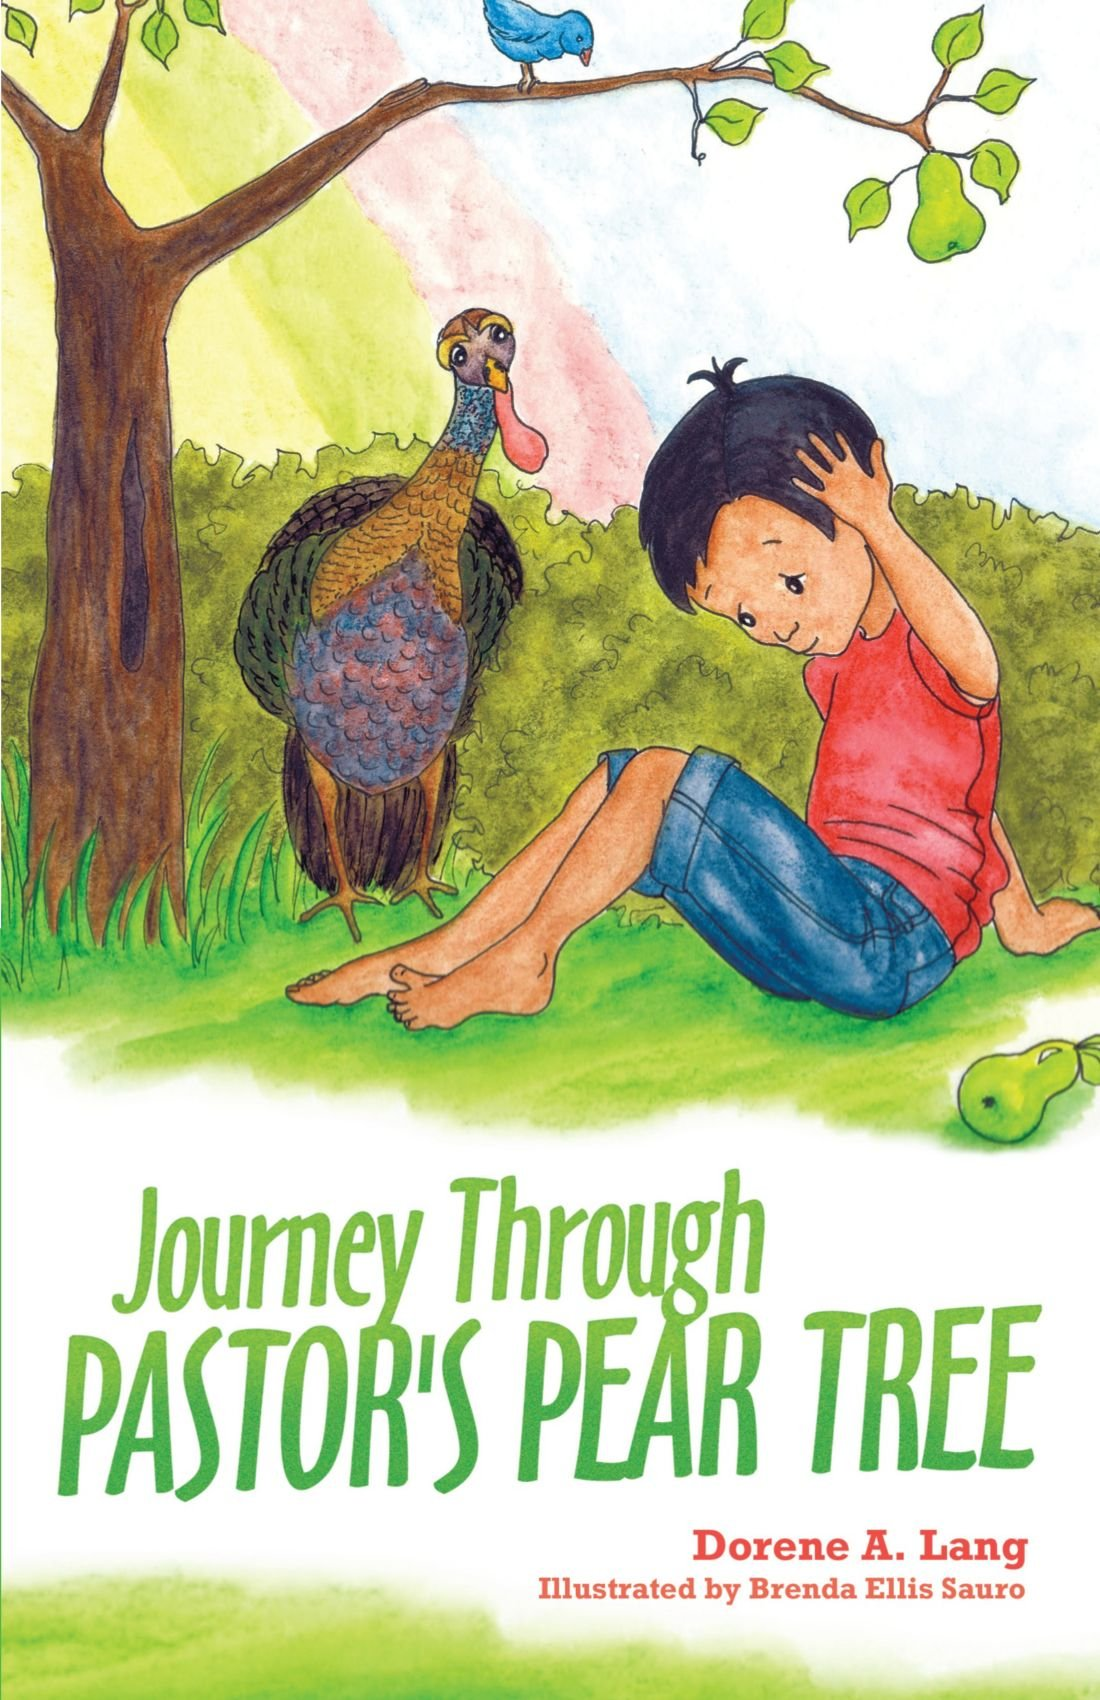 Download Journey Through Pastor's Pear Tree pdf